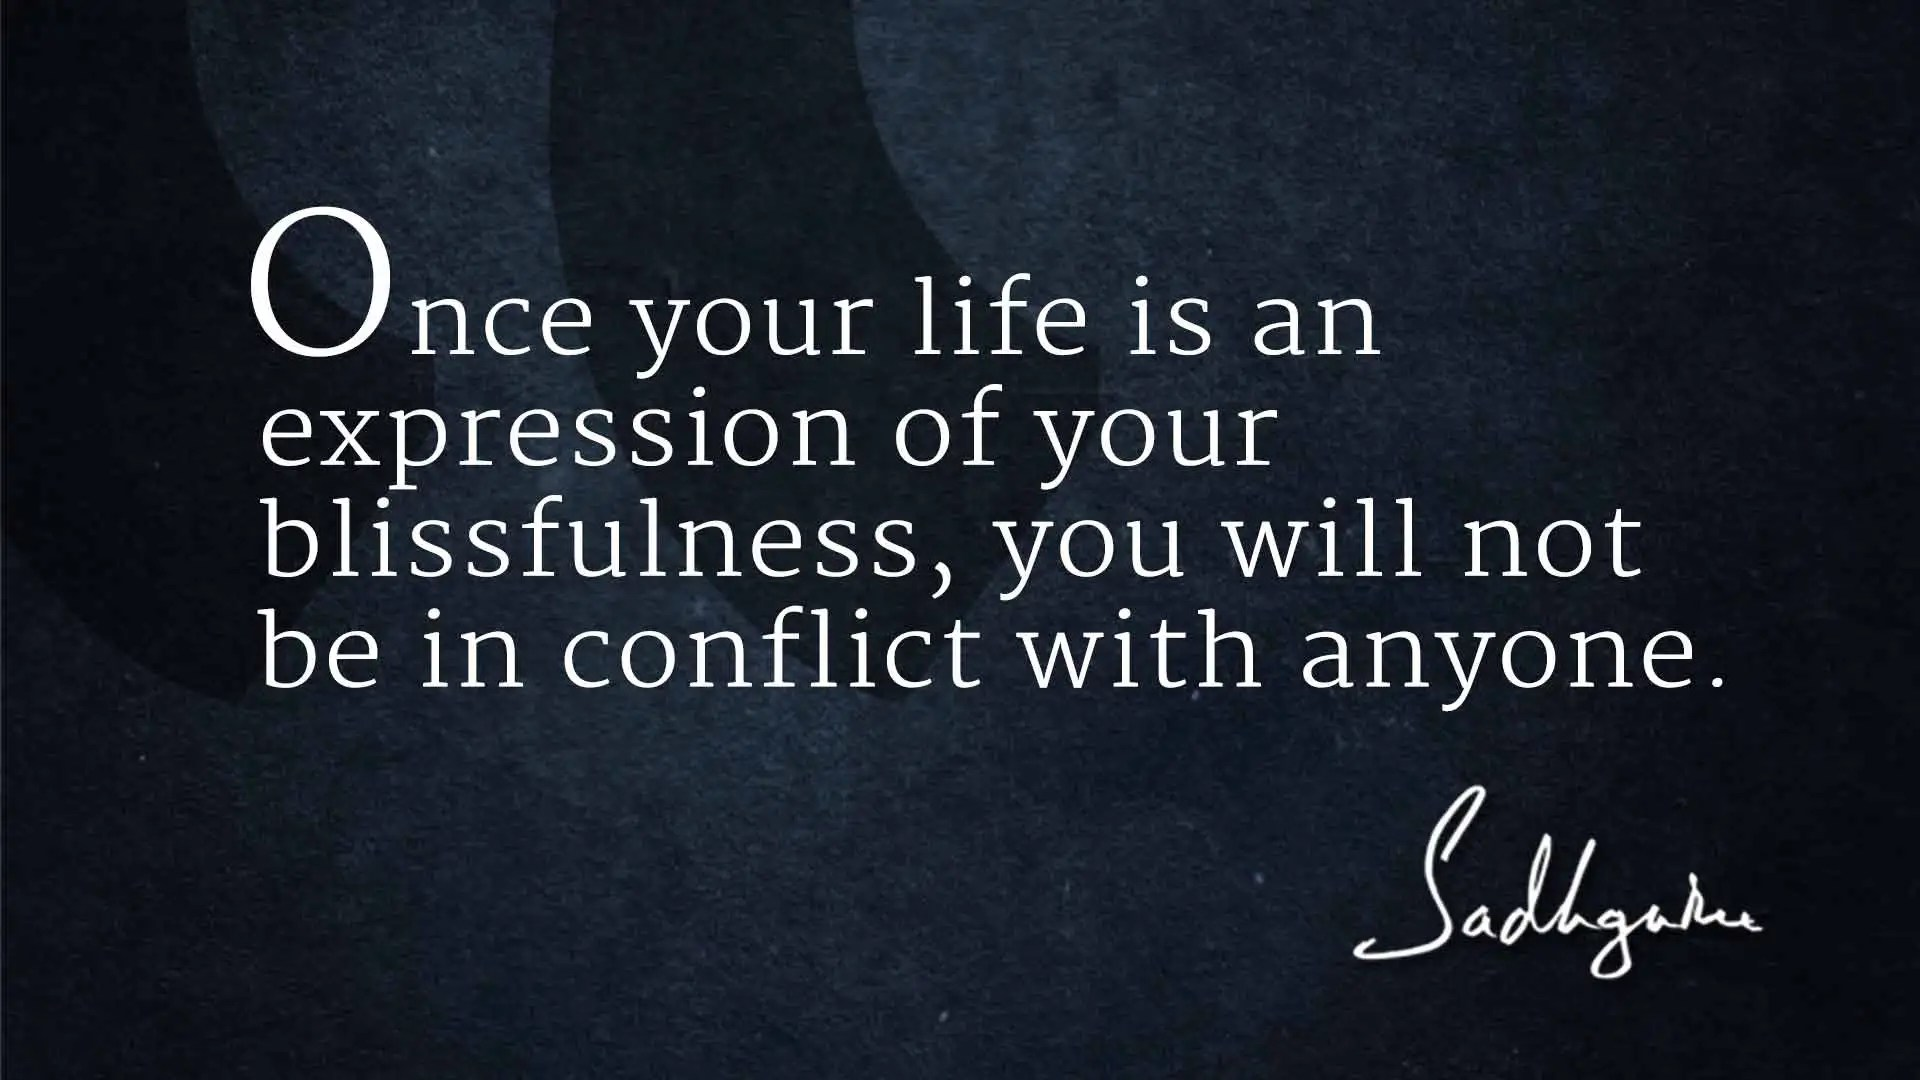 Sufi Wallpapers With Quotes Free Download Quotes On Life From Sadhguru The Isha Blog